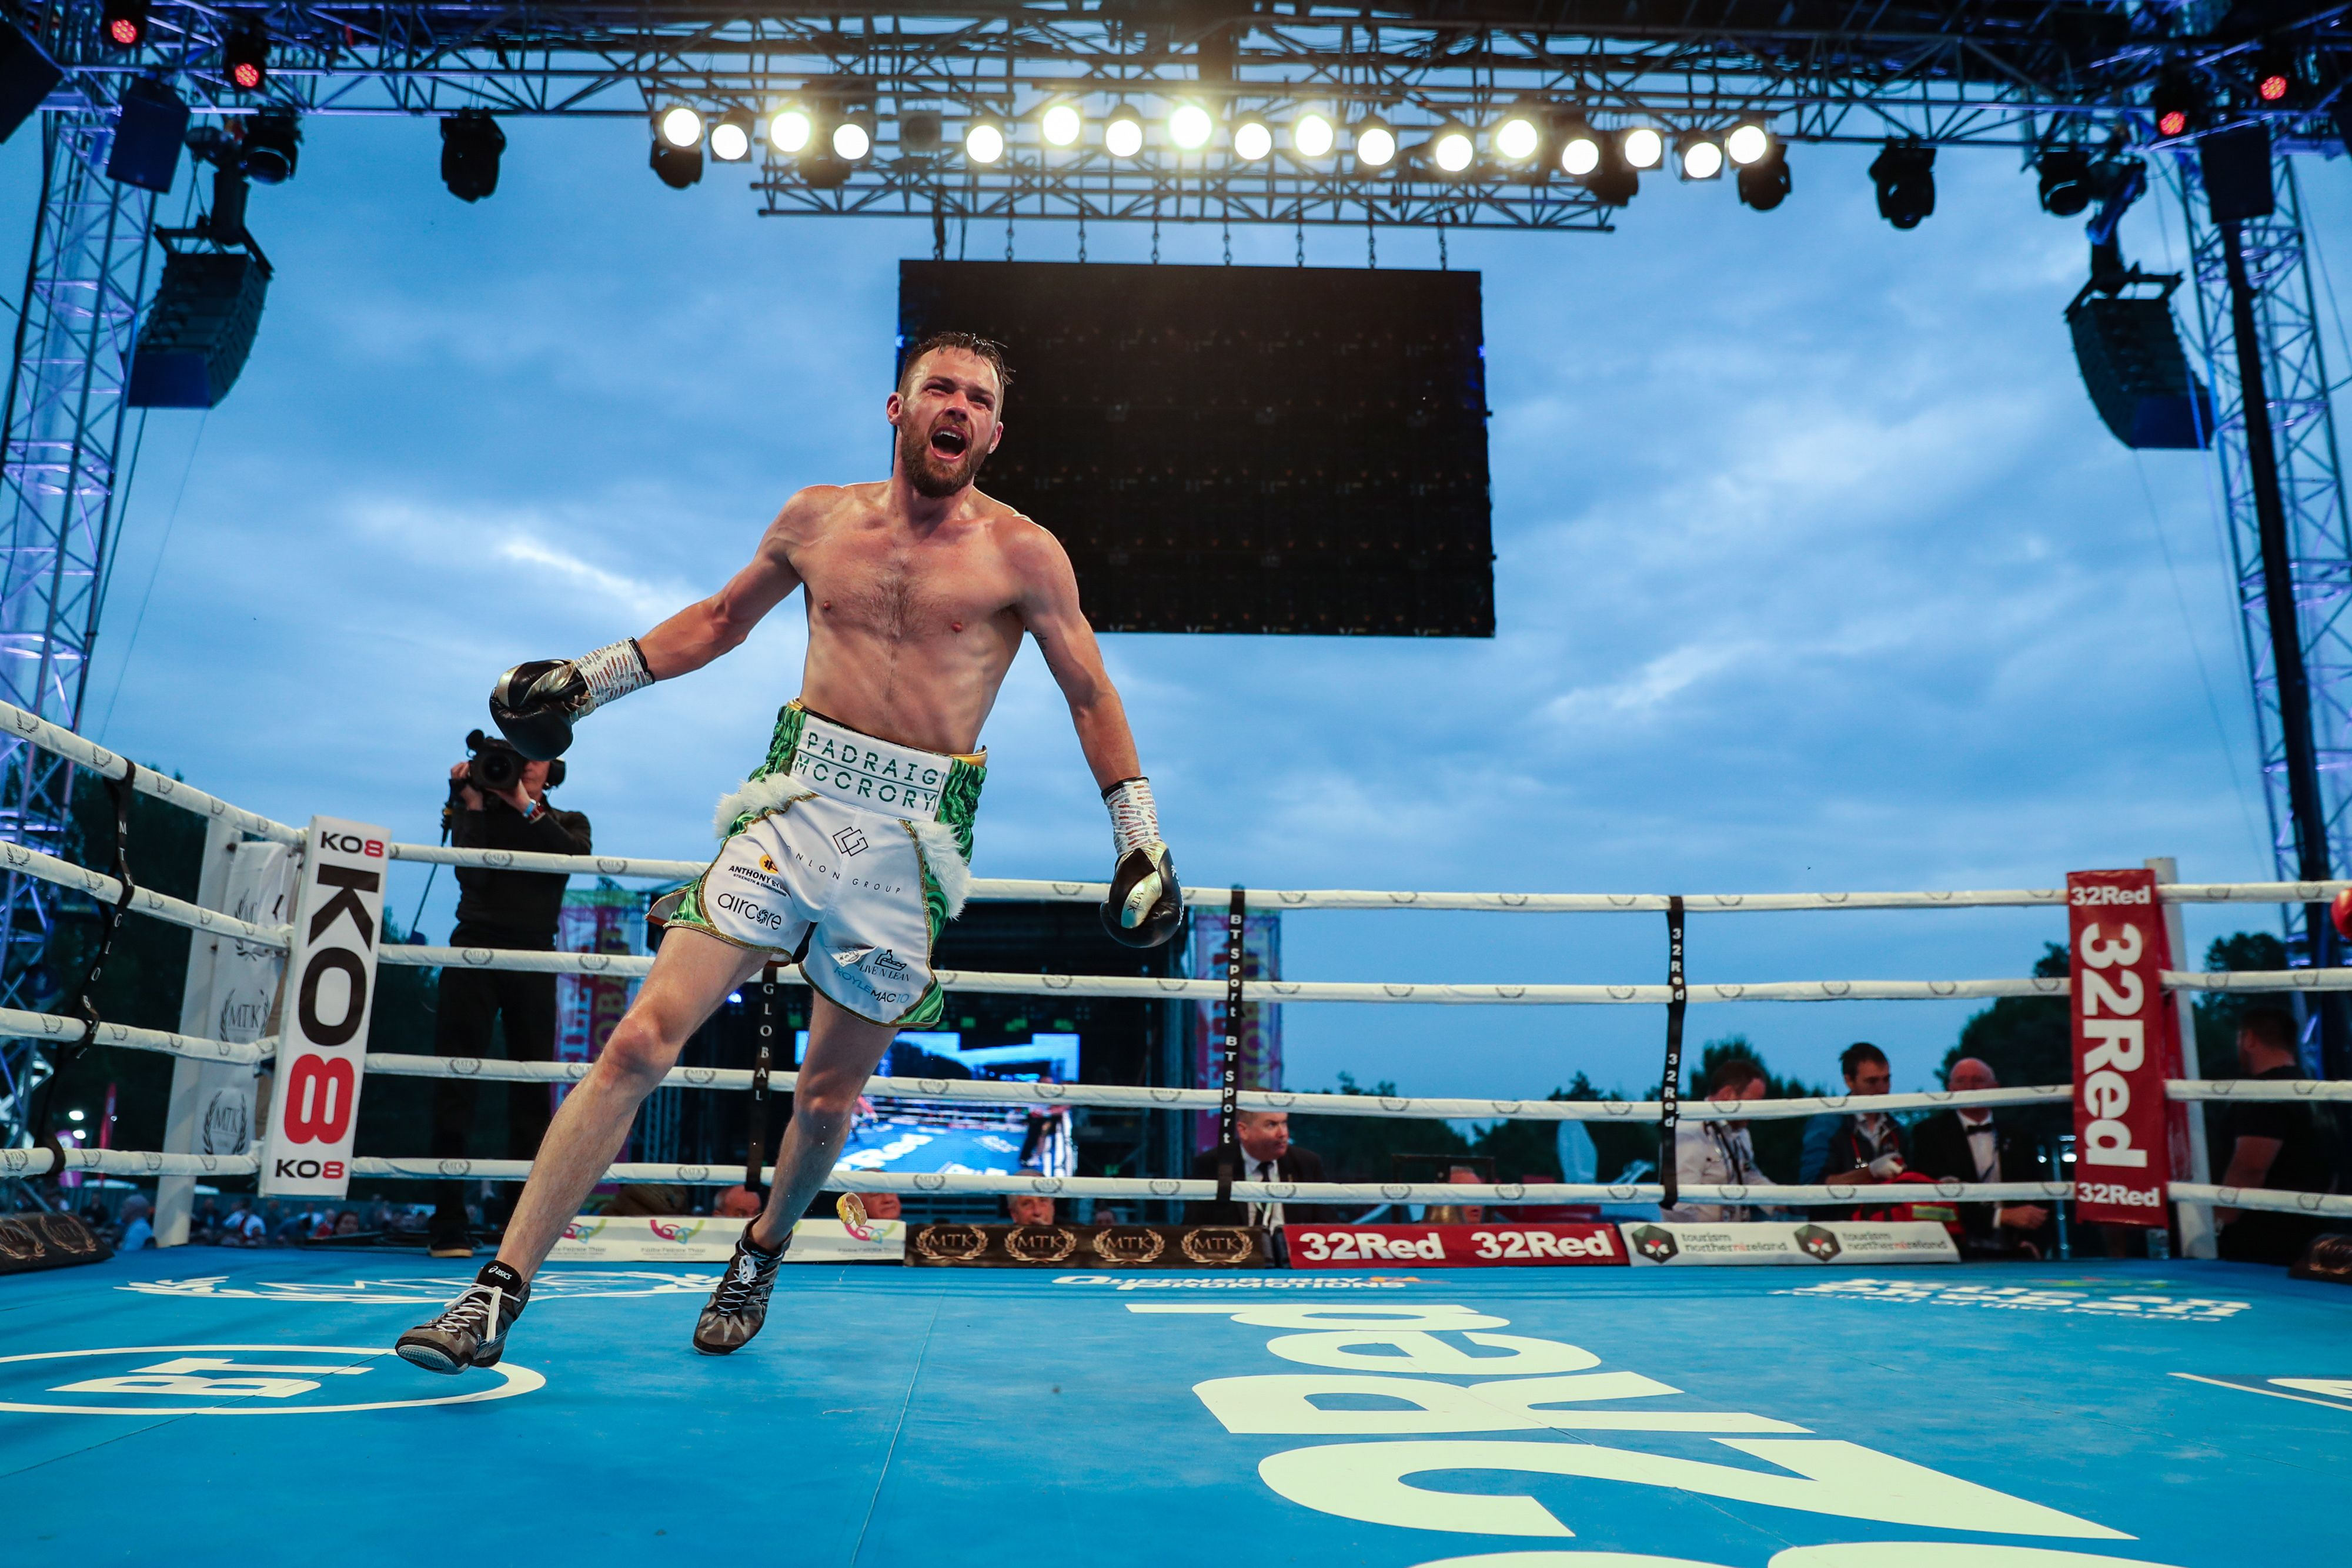 Padraig McCrory believes he will be celebrating victory over Mickey Ellison on Wednesday